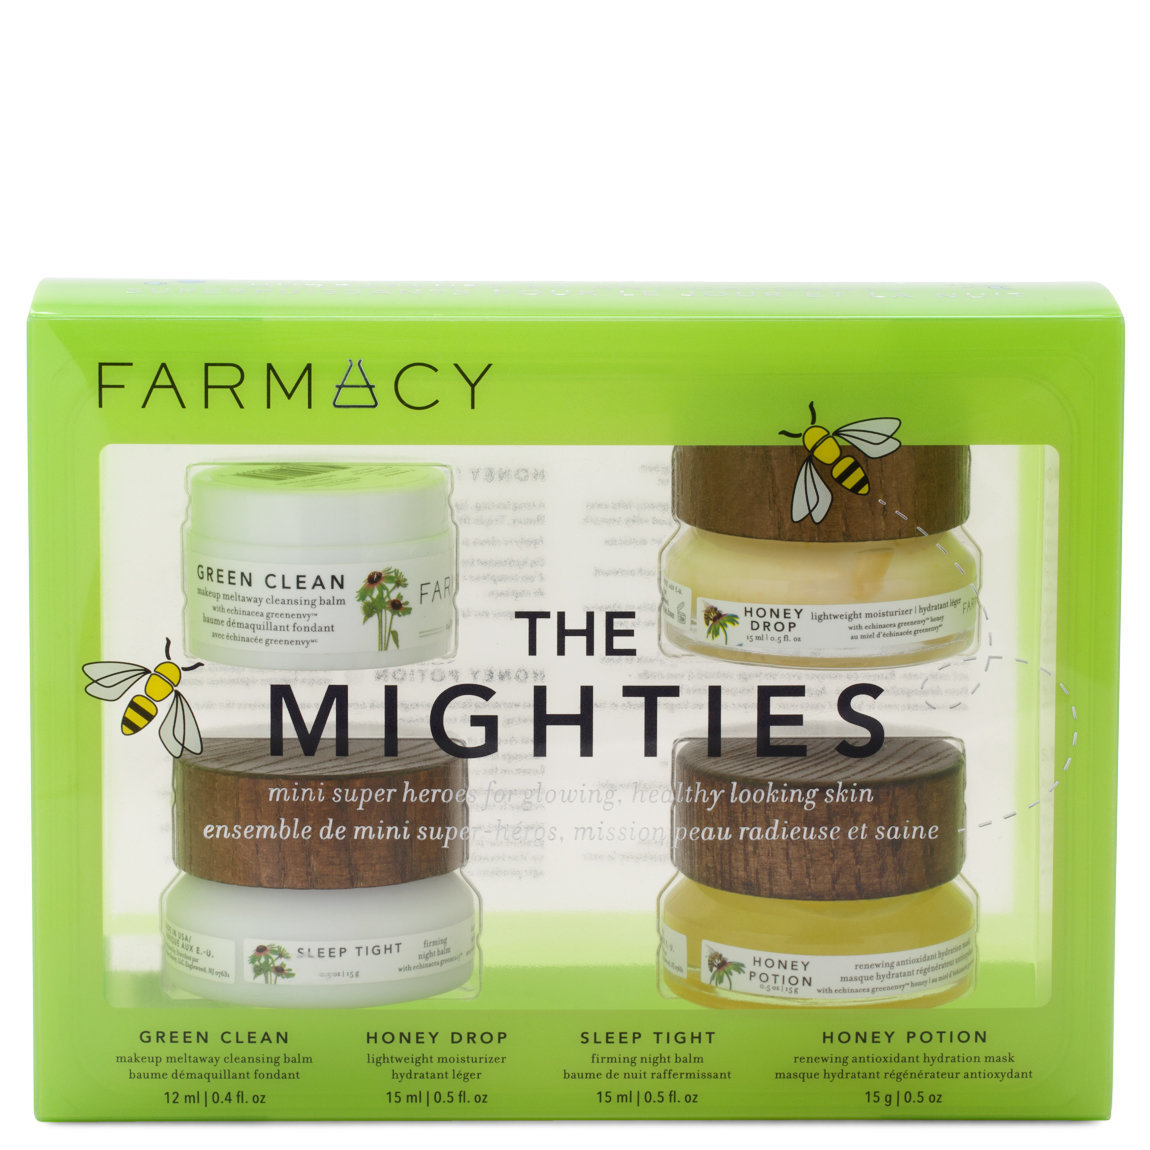 Farmacy The Mighties Set product smear.